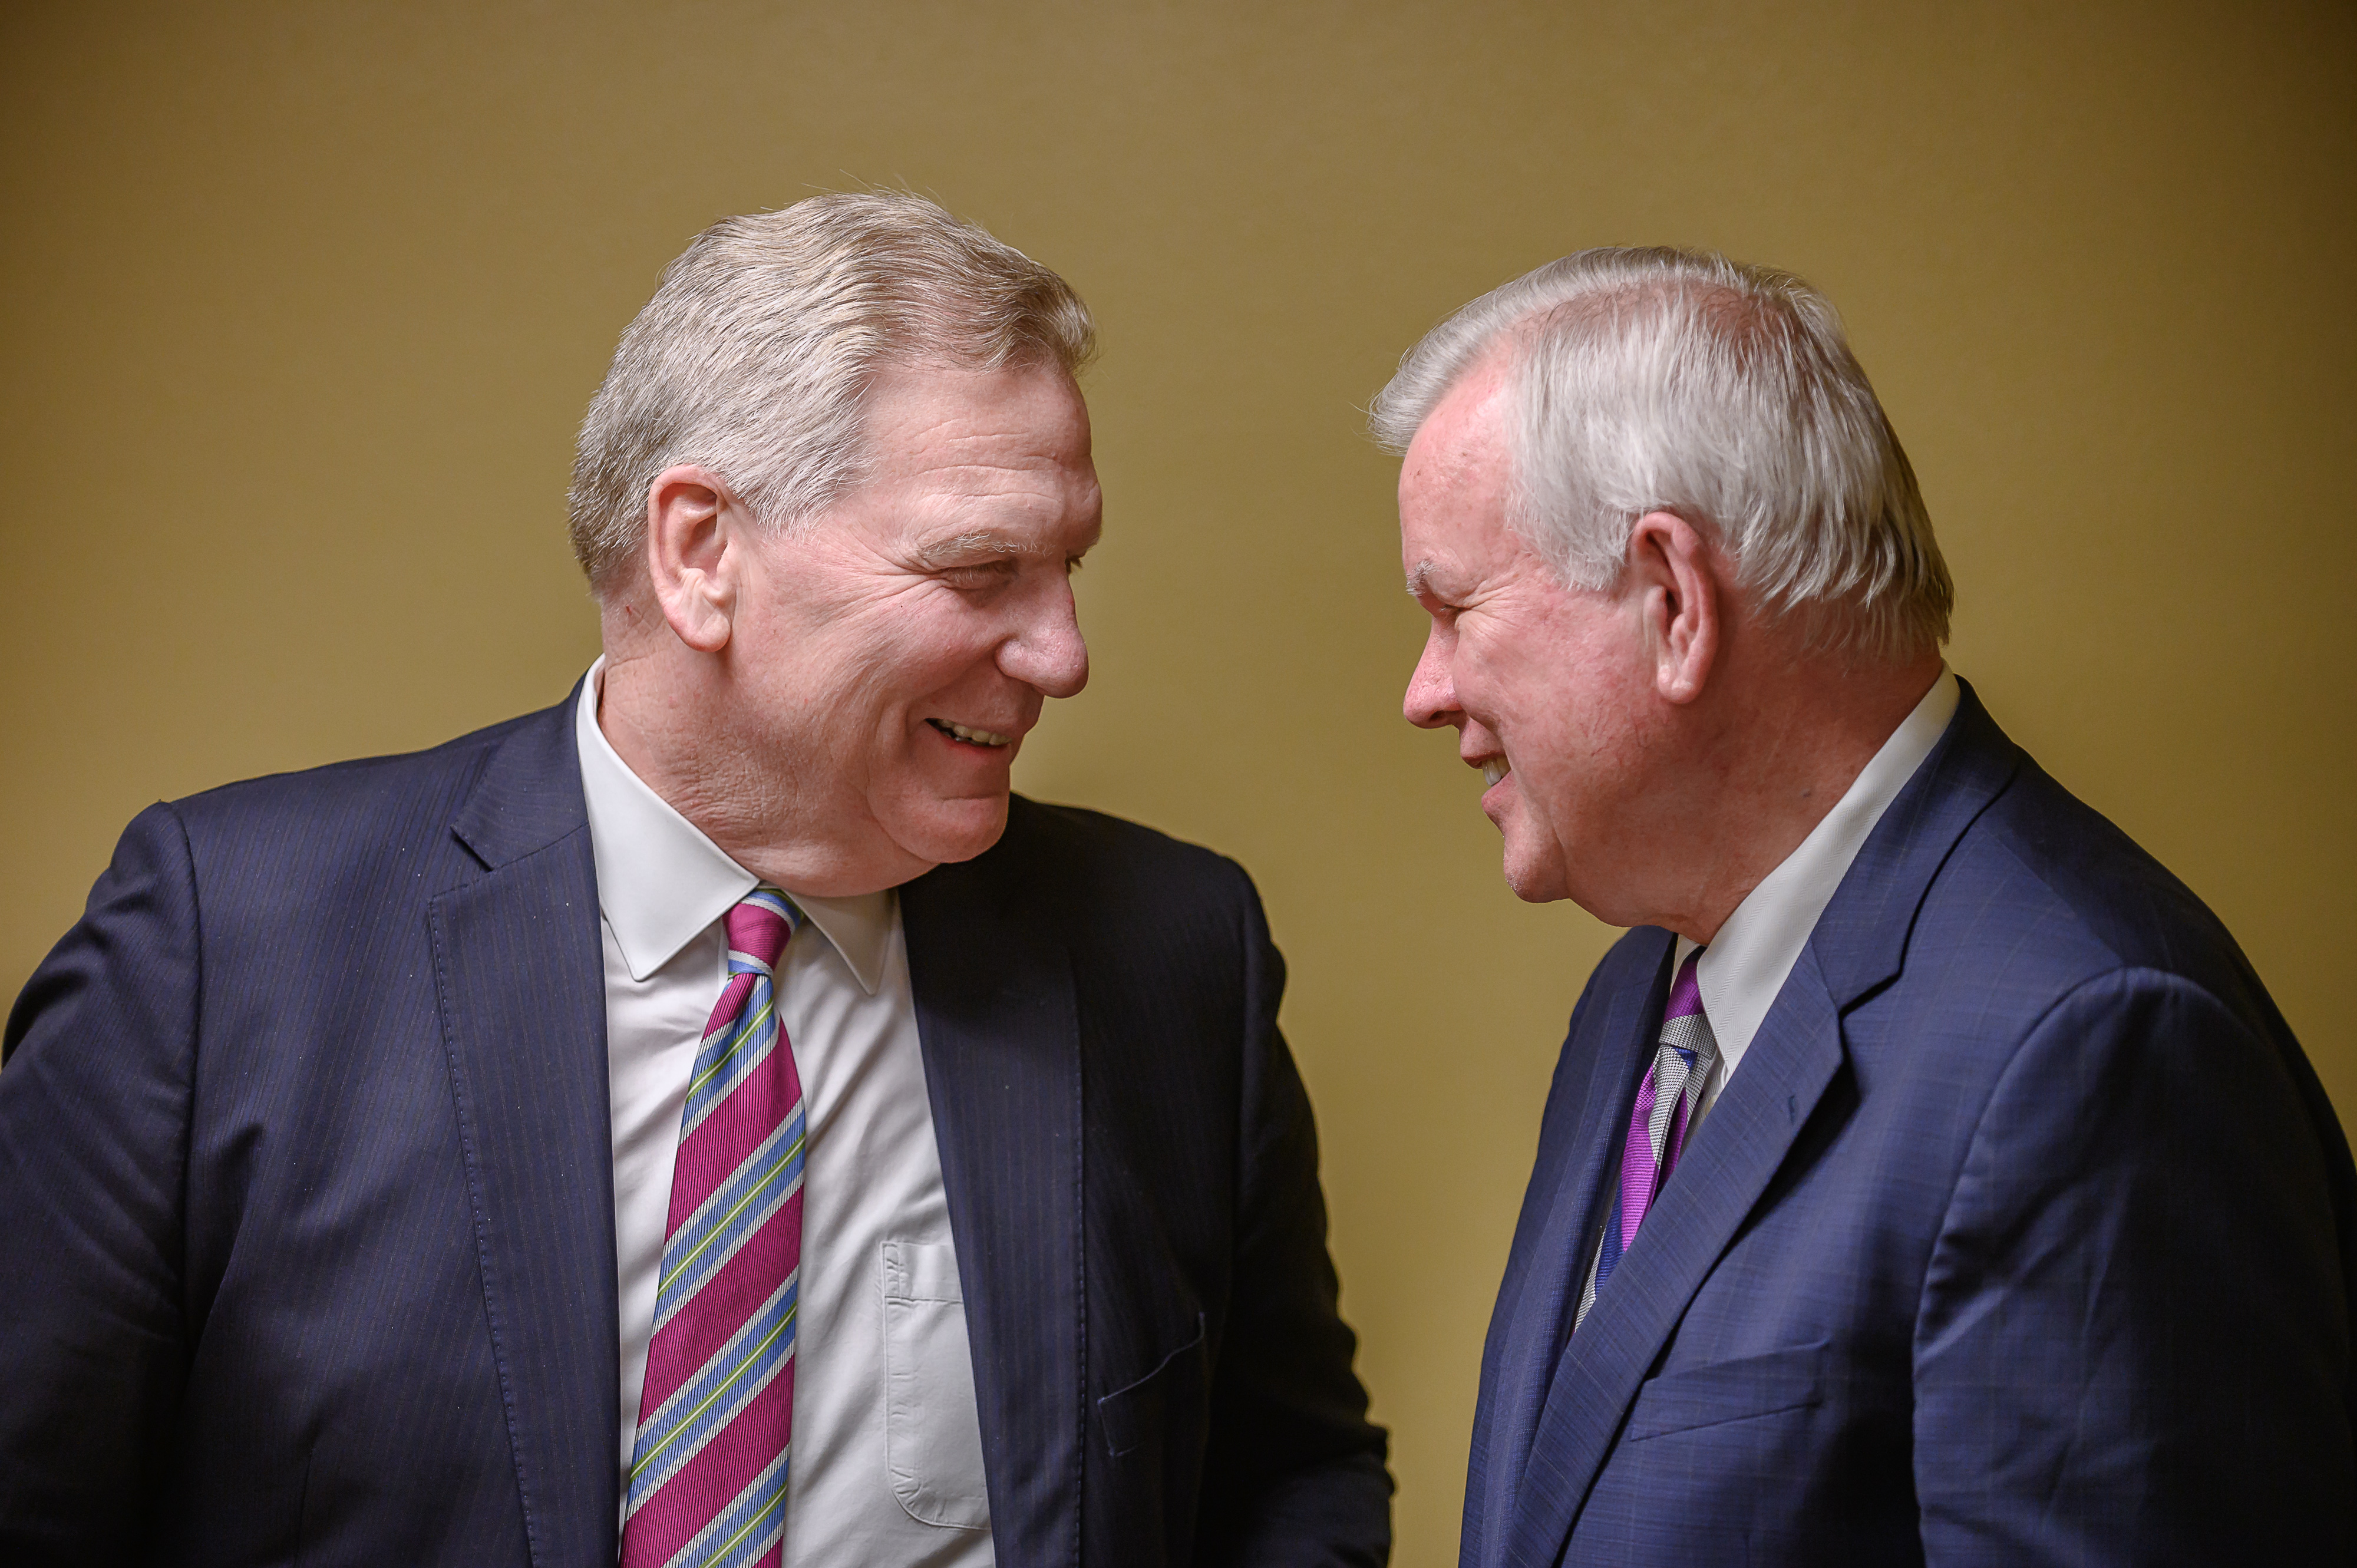 Elder Craig C. Christensen, General Authority Seventy, Area President of the Utah Areas (left) speaks with Elder Steven E. Snow, General Authority Seventy, Church Historian, both of the Church of Jesus Christ of Latter-day Saints, at the Historic Interfaith Tribute at the St. George Tabernacle in St. George, Utah on Thursday, May 2, 2019.